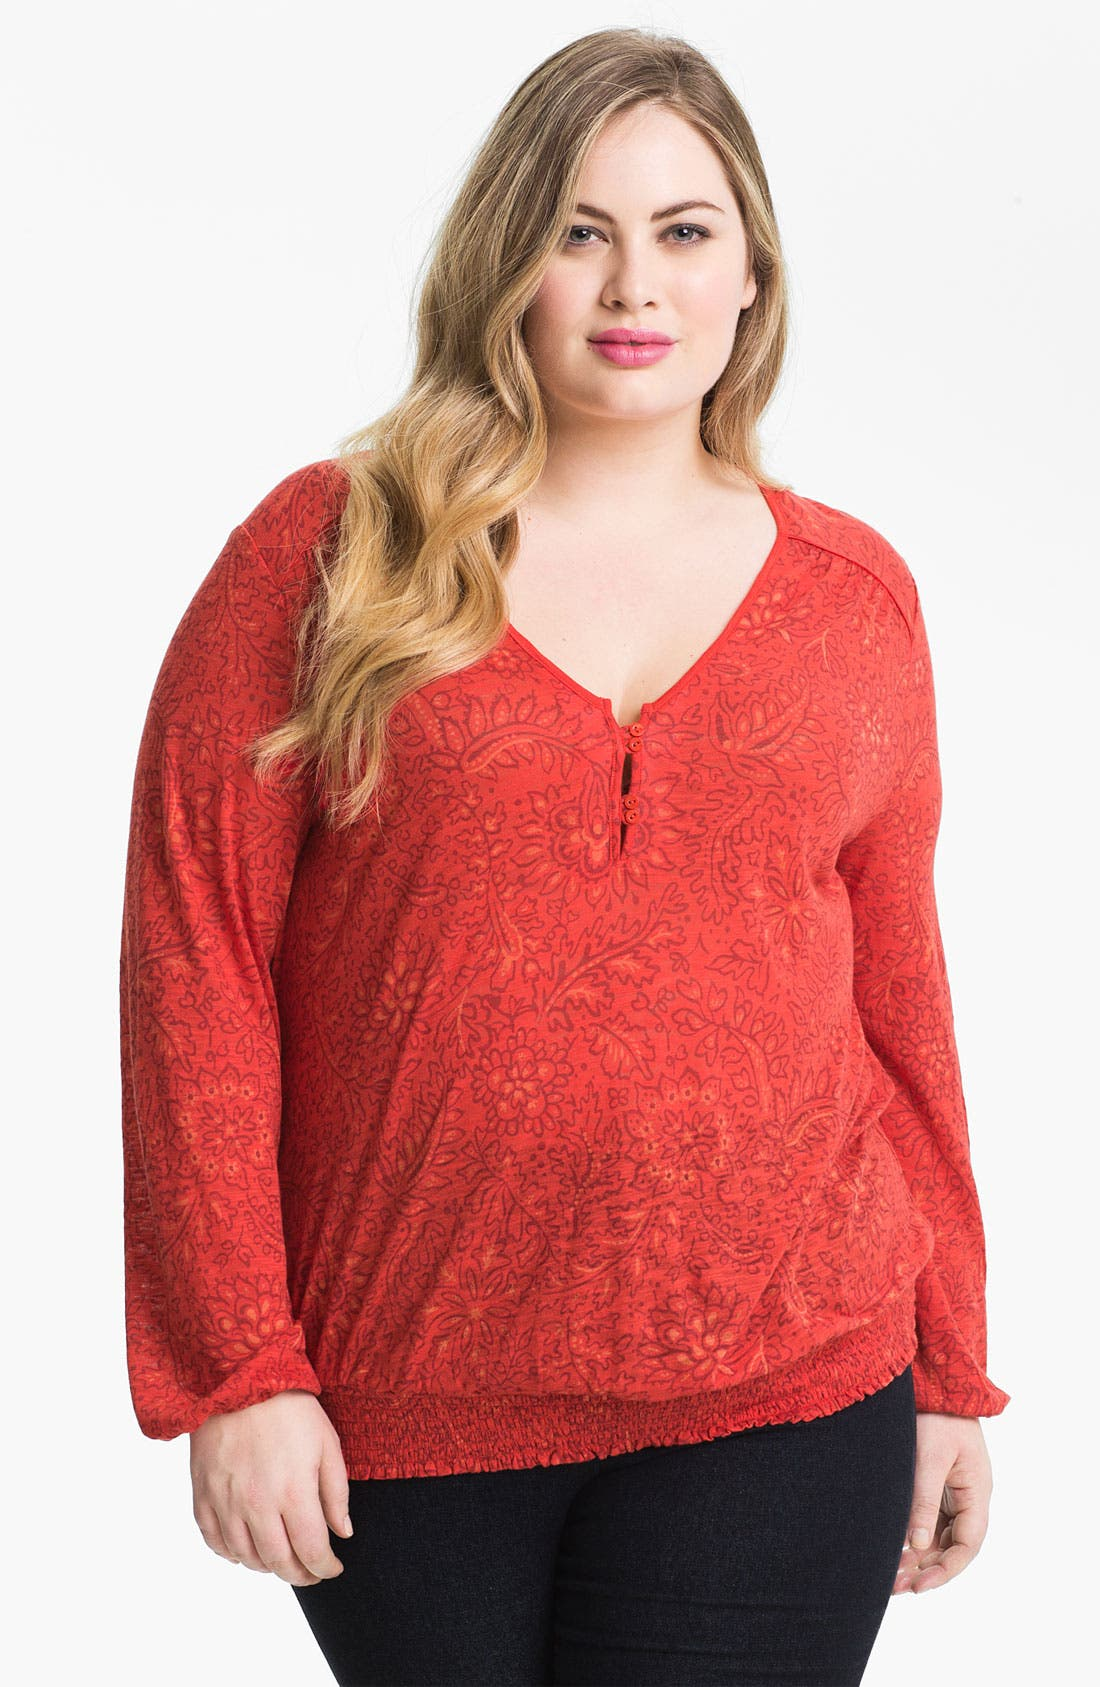 Alternate Image 1 Selected - Lucky Brand 'Sundial' Print Top (Plus Size)